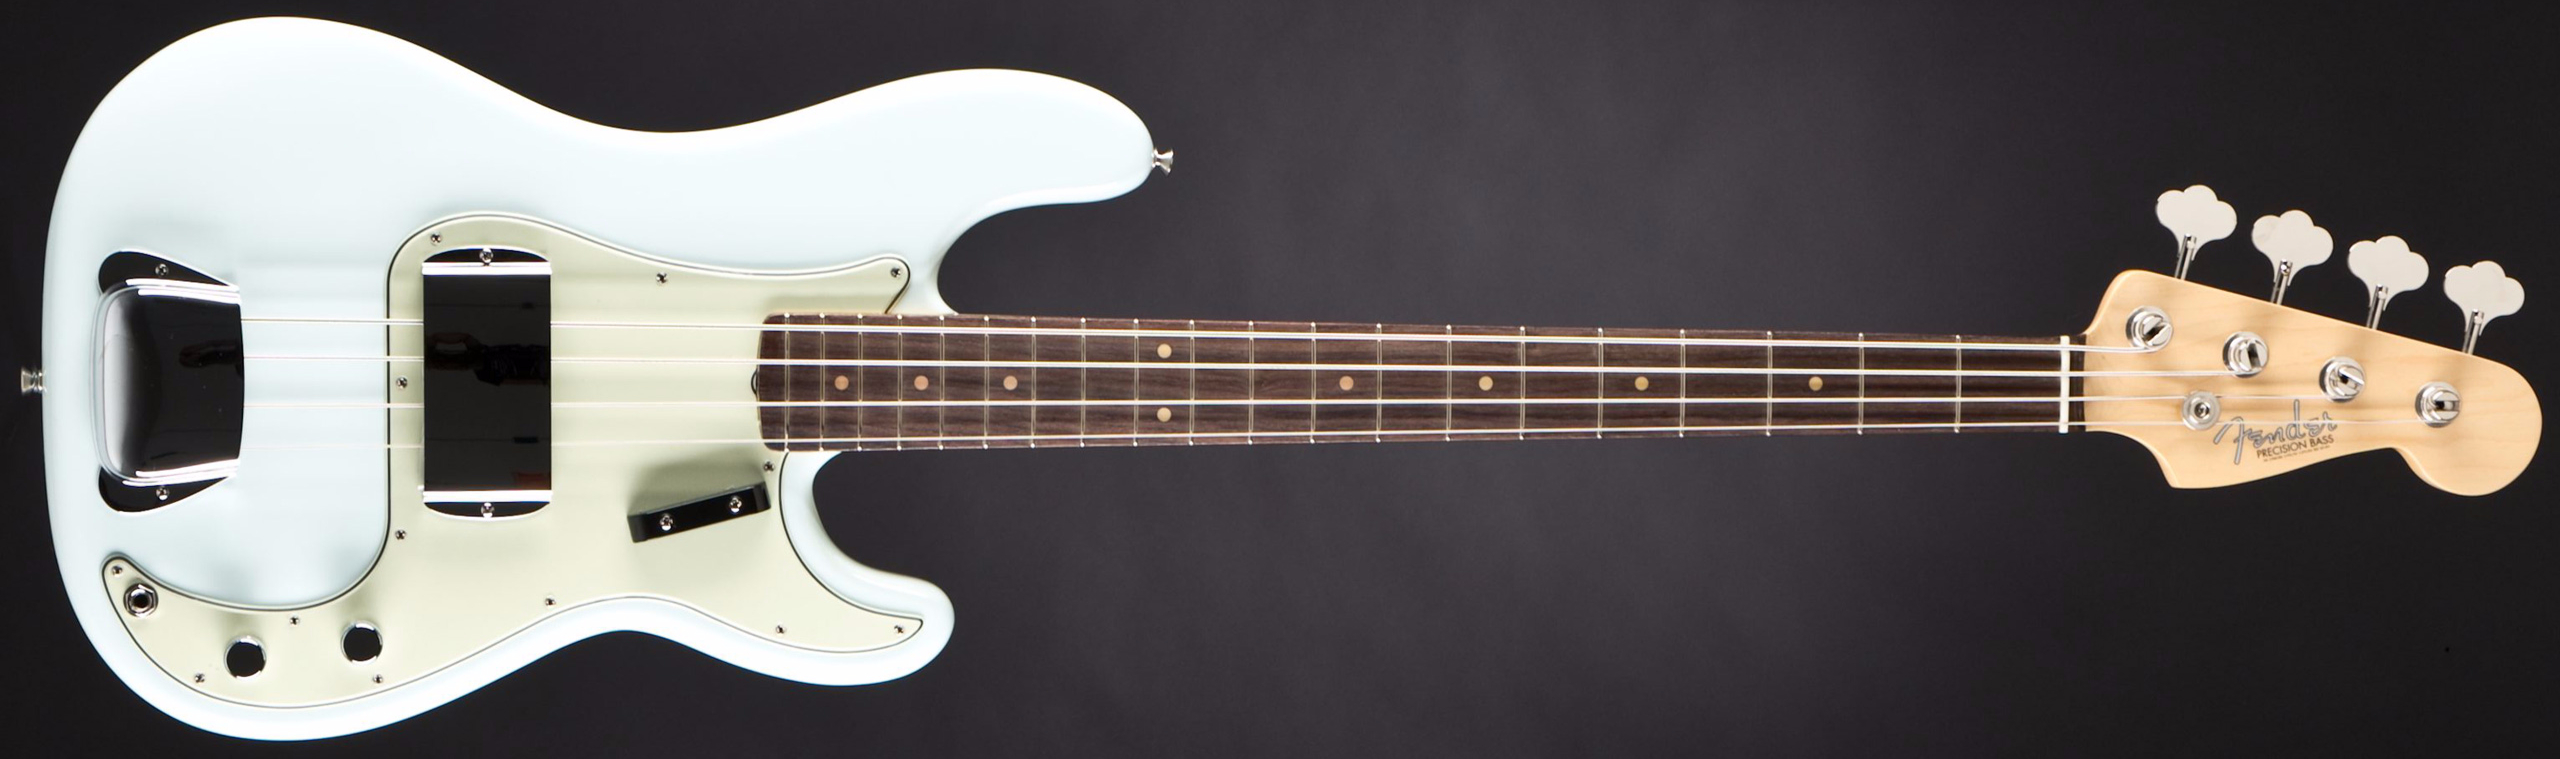 FENDER American Vintage '63 Precision Bass RW Faded Sonic Blue